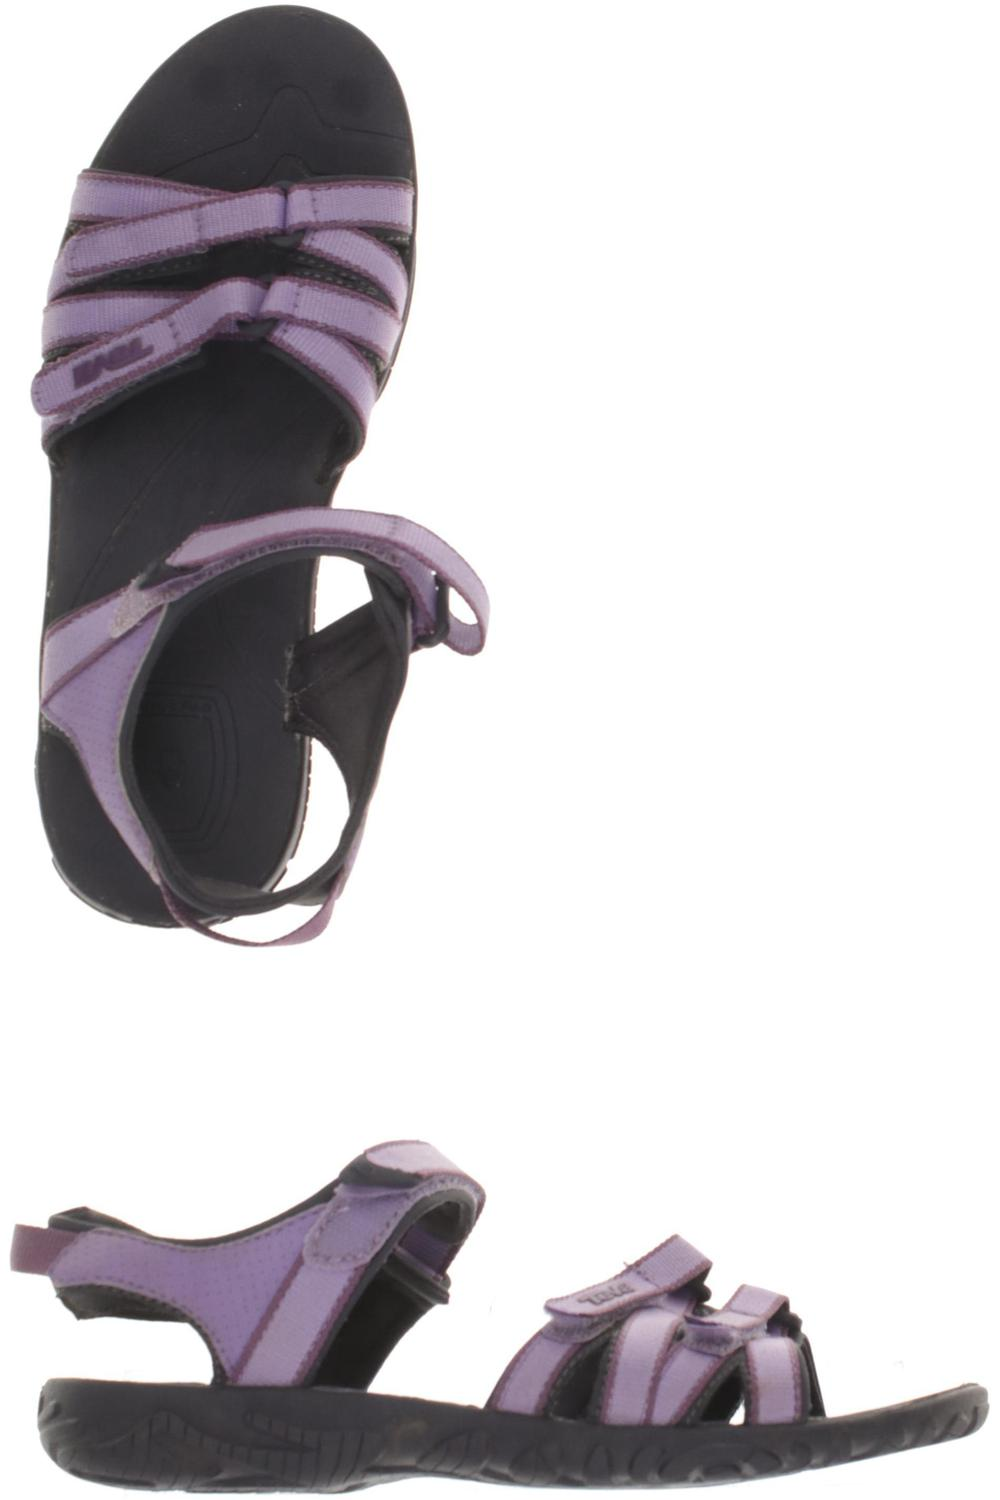 the latest 40da6 169da ubup | Teva Damen Sandale DE 34 Second Hand kaufen